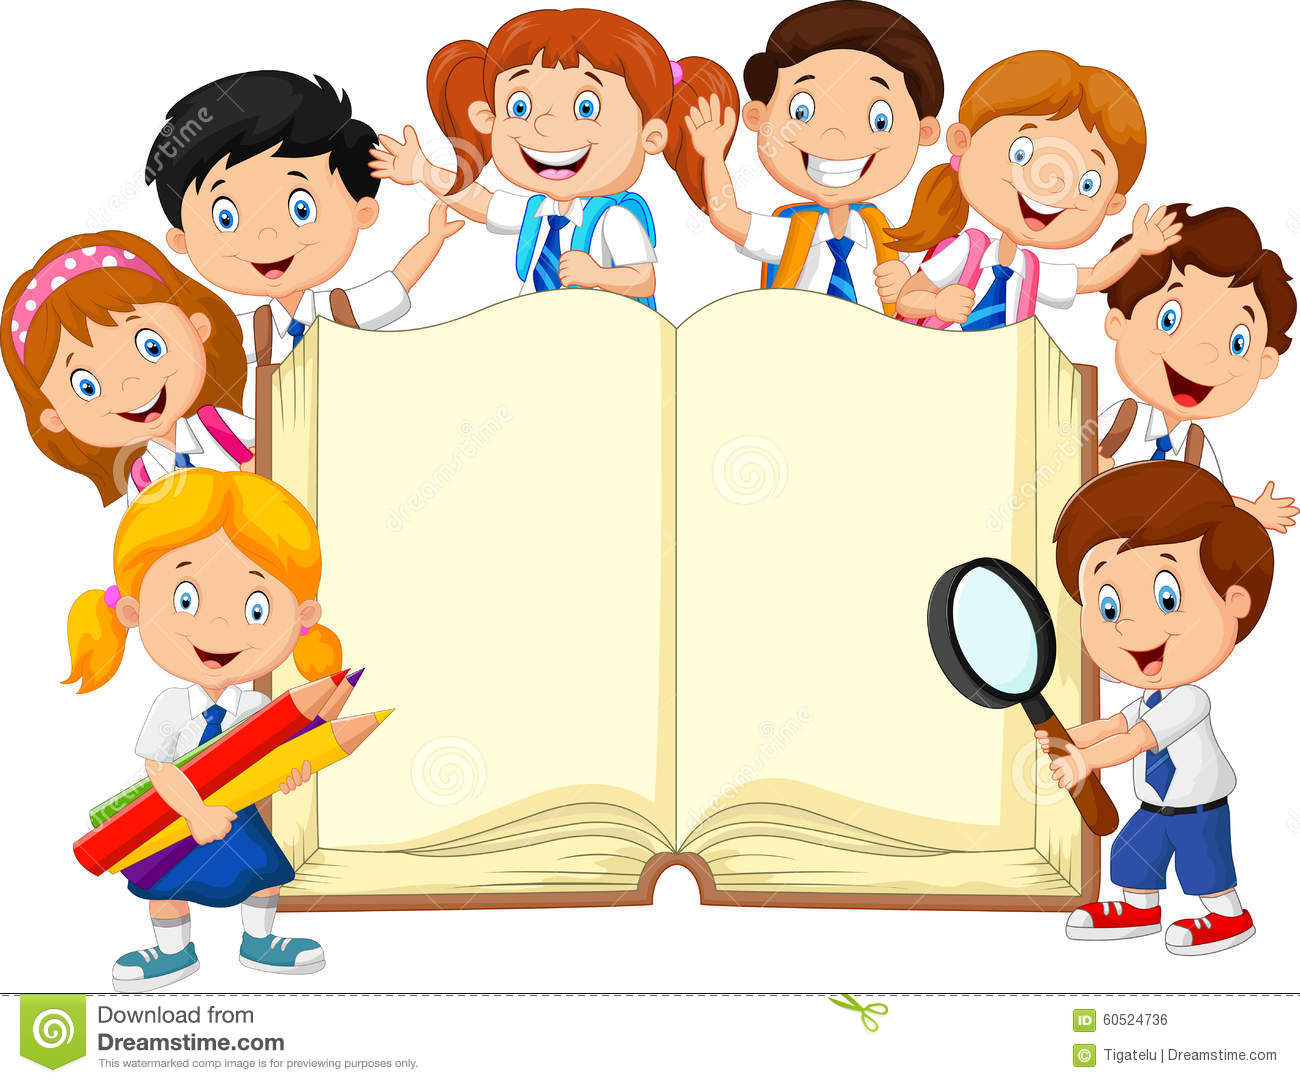 cartoon-school-children-book-isolated-illustration-60524736.jpg